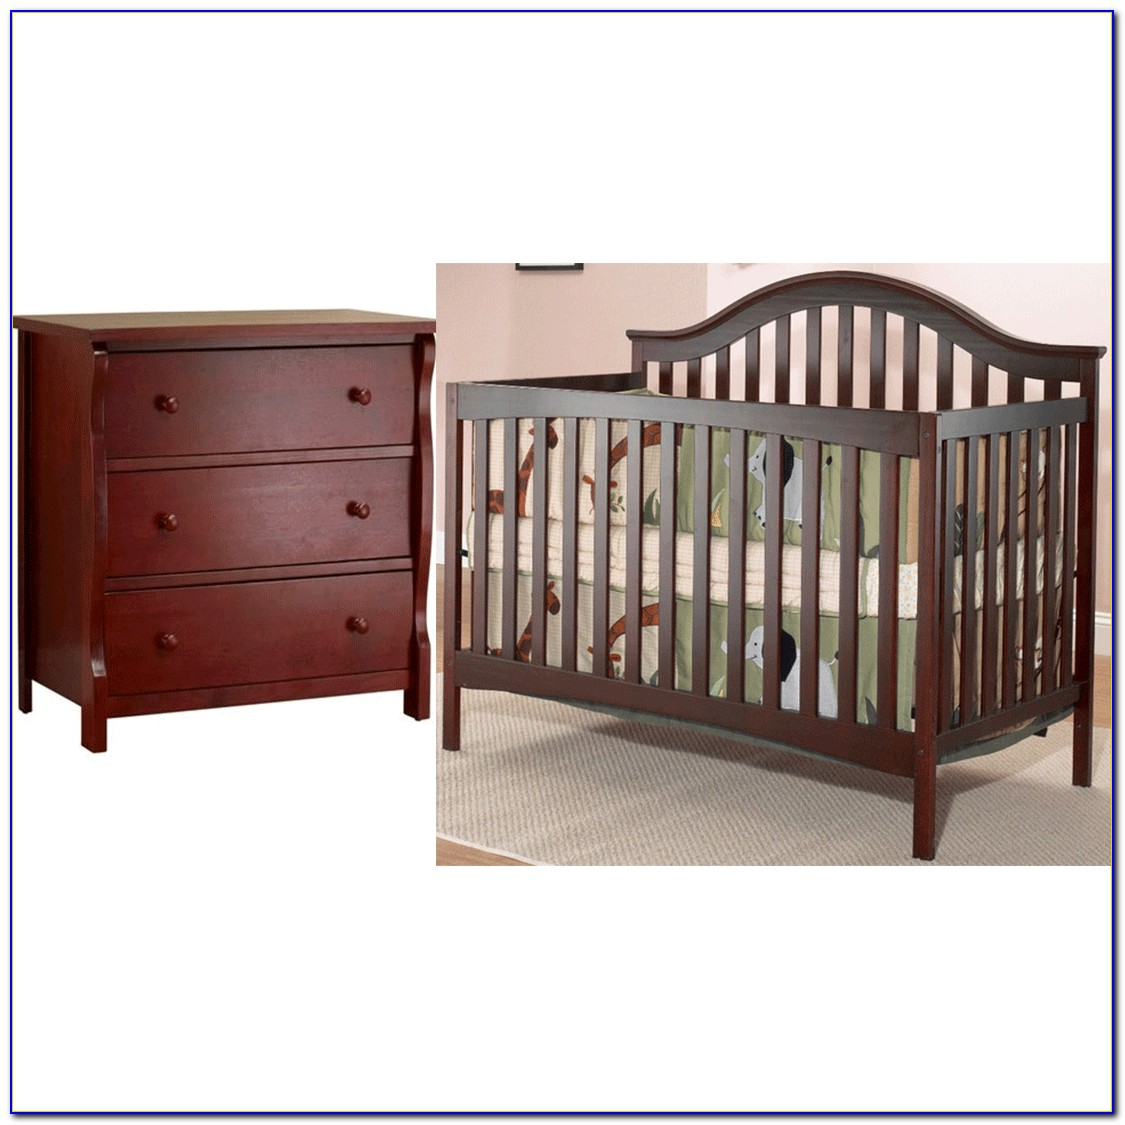 Crib And Dresser Sets Sears